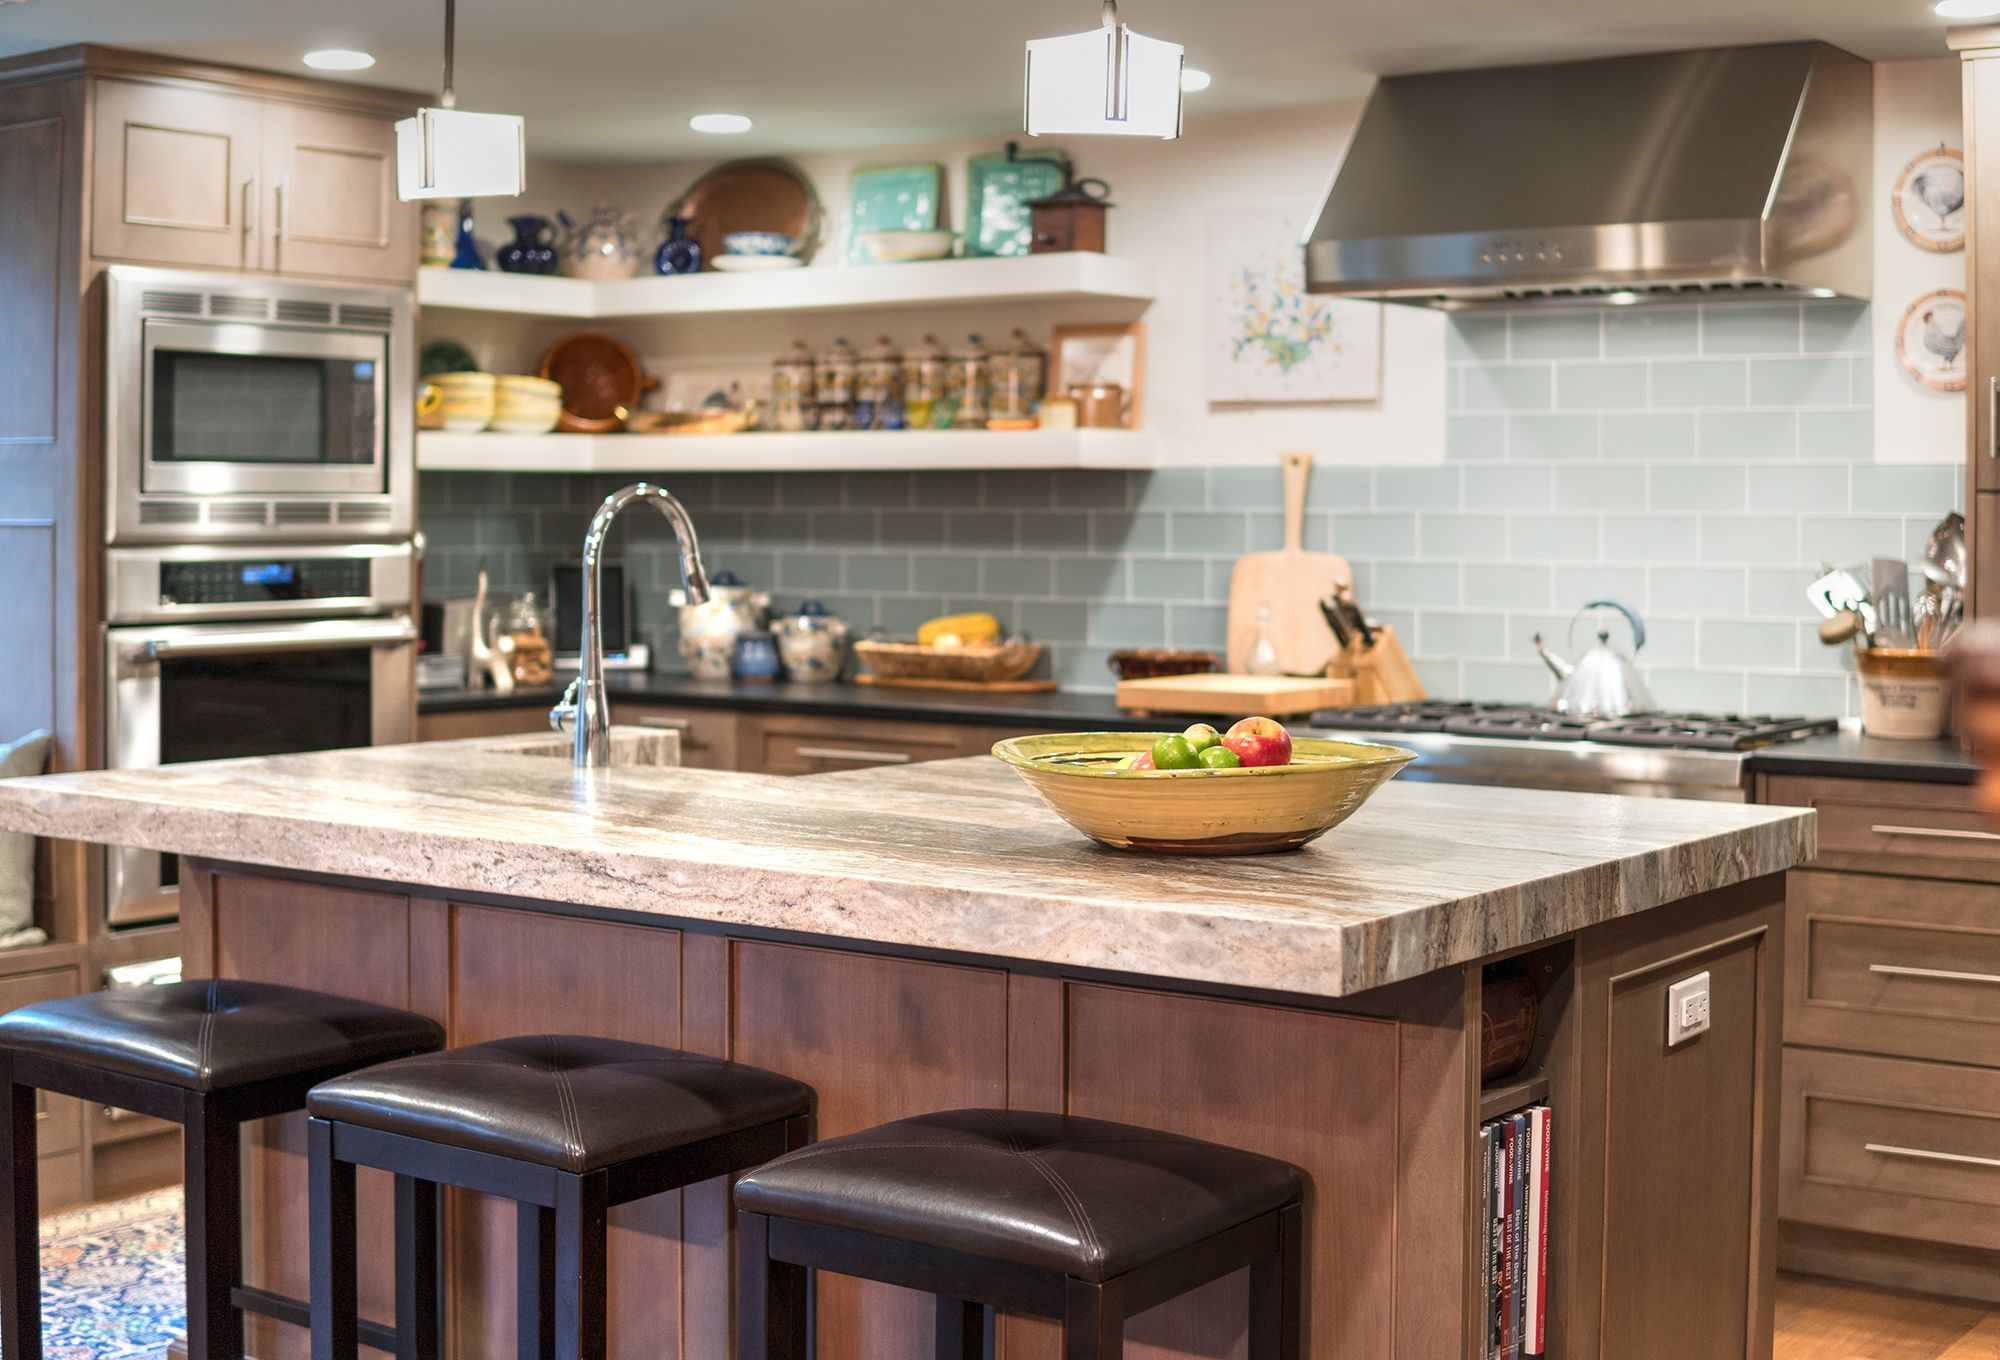 This beautiful transitional kitchen features UltraCraft Cabinetry's Lauderdale door style in Red Birch with Storm Grey stain and all-plywood box construction.   Designed by: Gail O'Rourke (Instagram @gail_gobig) of White Wood Kitchens (Instagram @whitewoodkitchens) in Sandwich, MA. Photographer: Robert Scott Button (Instagram @robertscottbutton).  #cabinets #cabinetry #redbirch #birchcabinets #greystain #graystain #ultracraft #ultracraftcabinetry #kitchen #kitchendesign